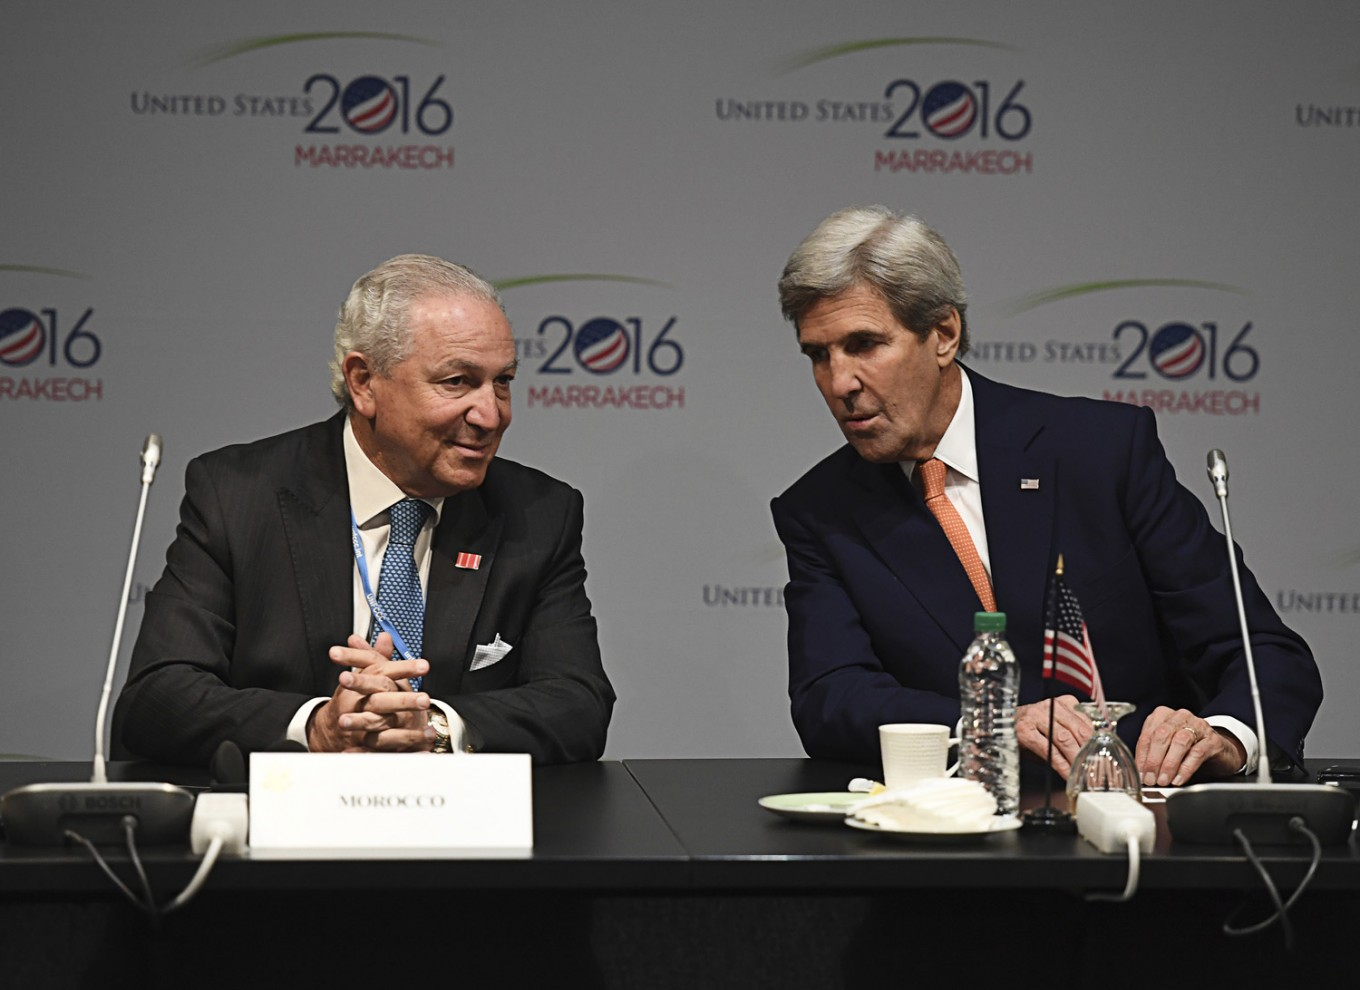 John Kerry, who signed Paris accord for US, is Biden's climate envoy